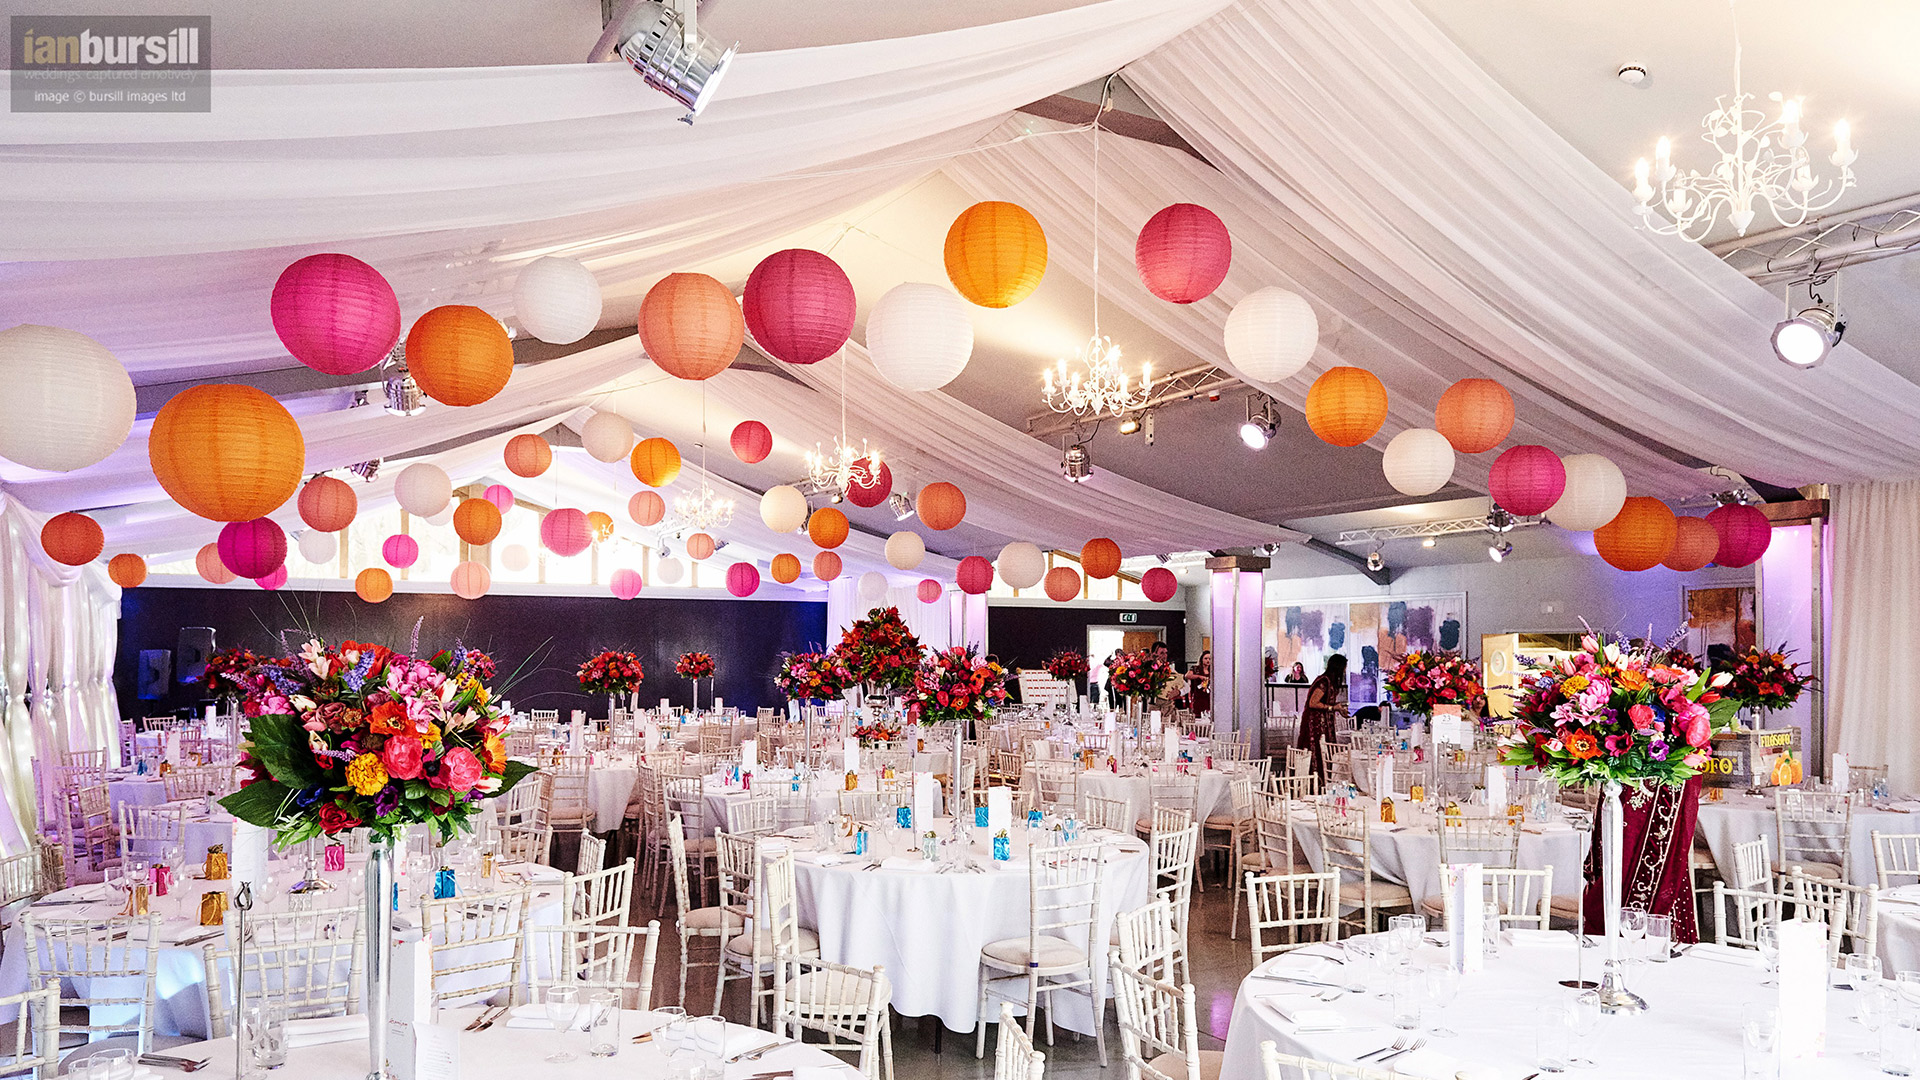 More Weddings ceiling drapes with hanging paper lanterns